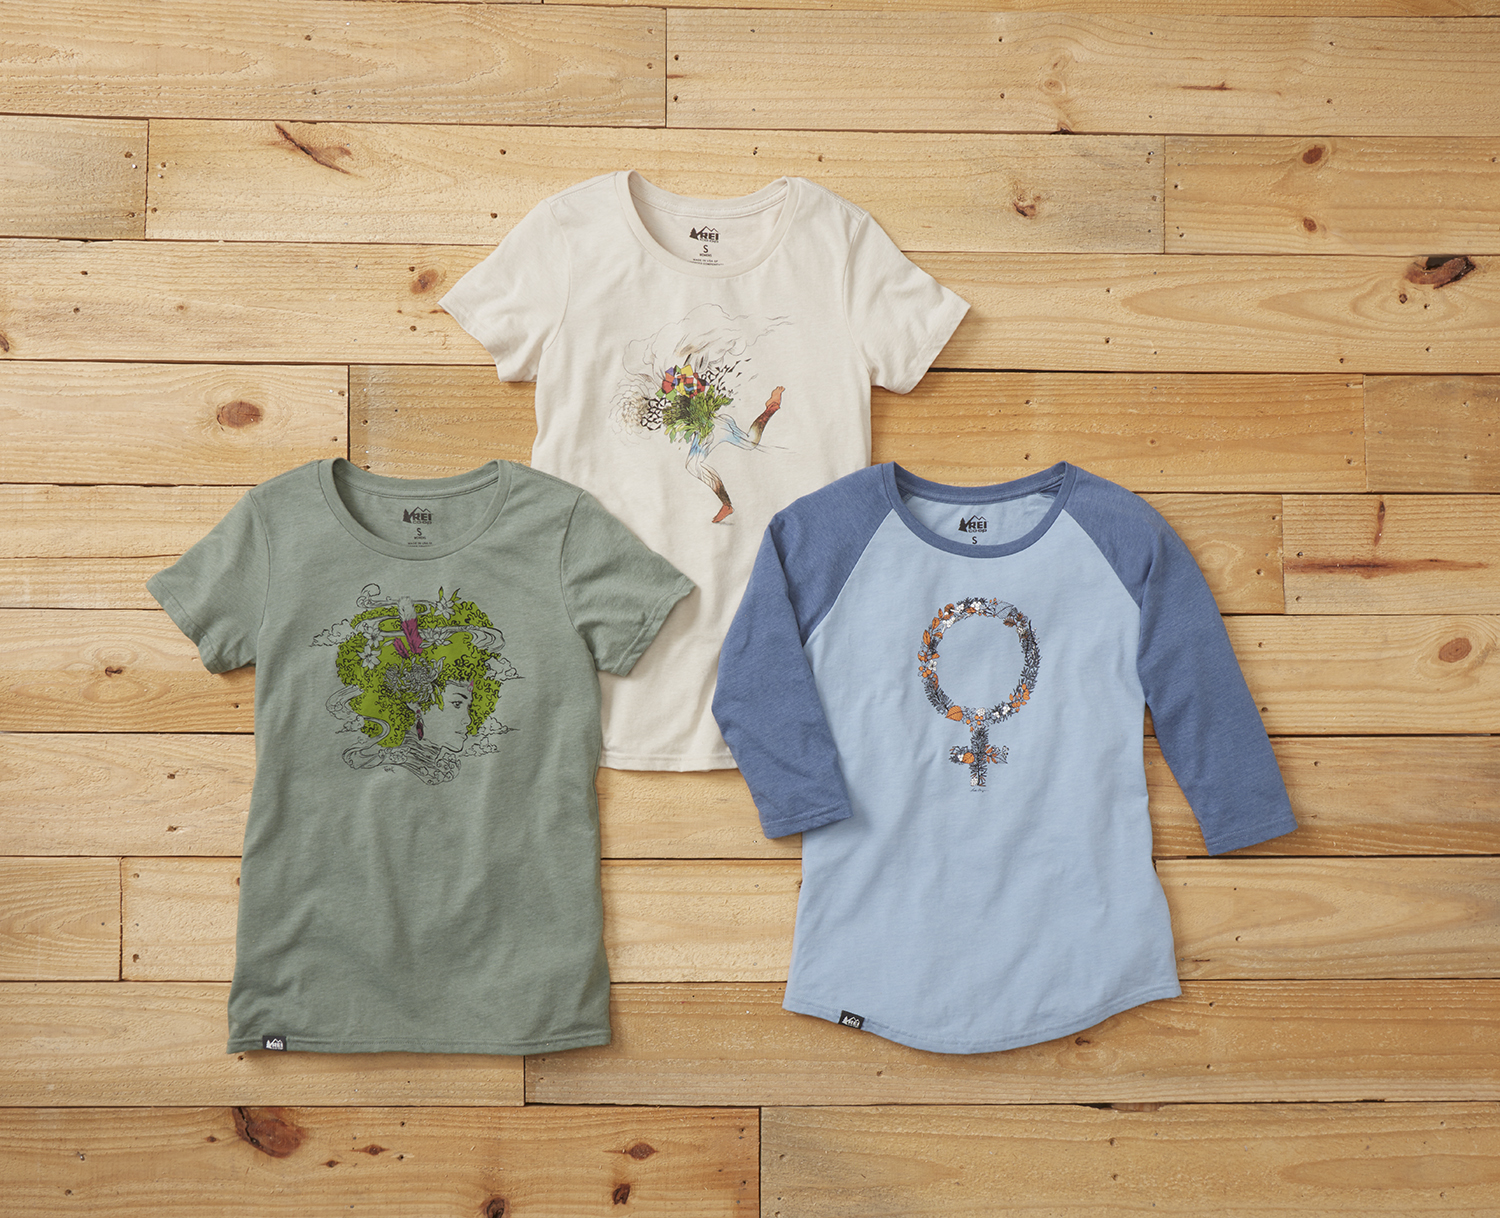 Force of Nature Tees